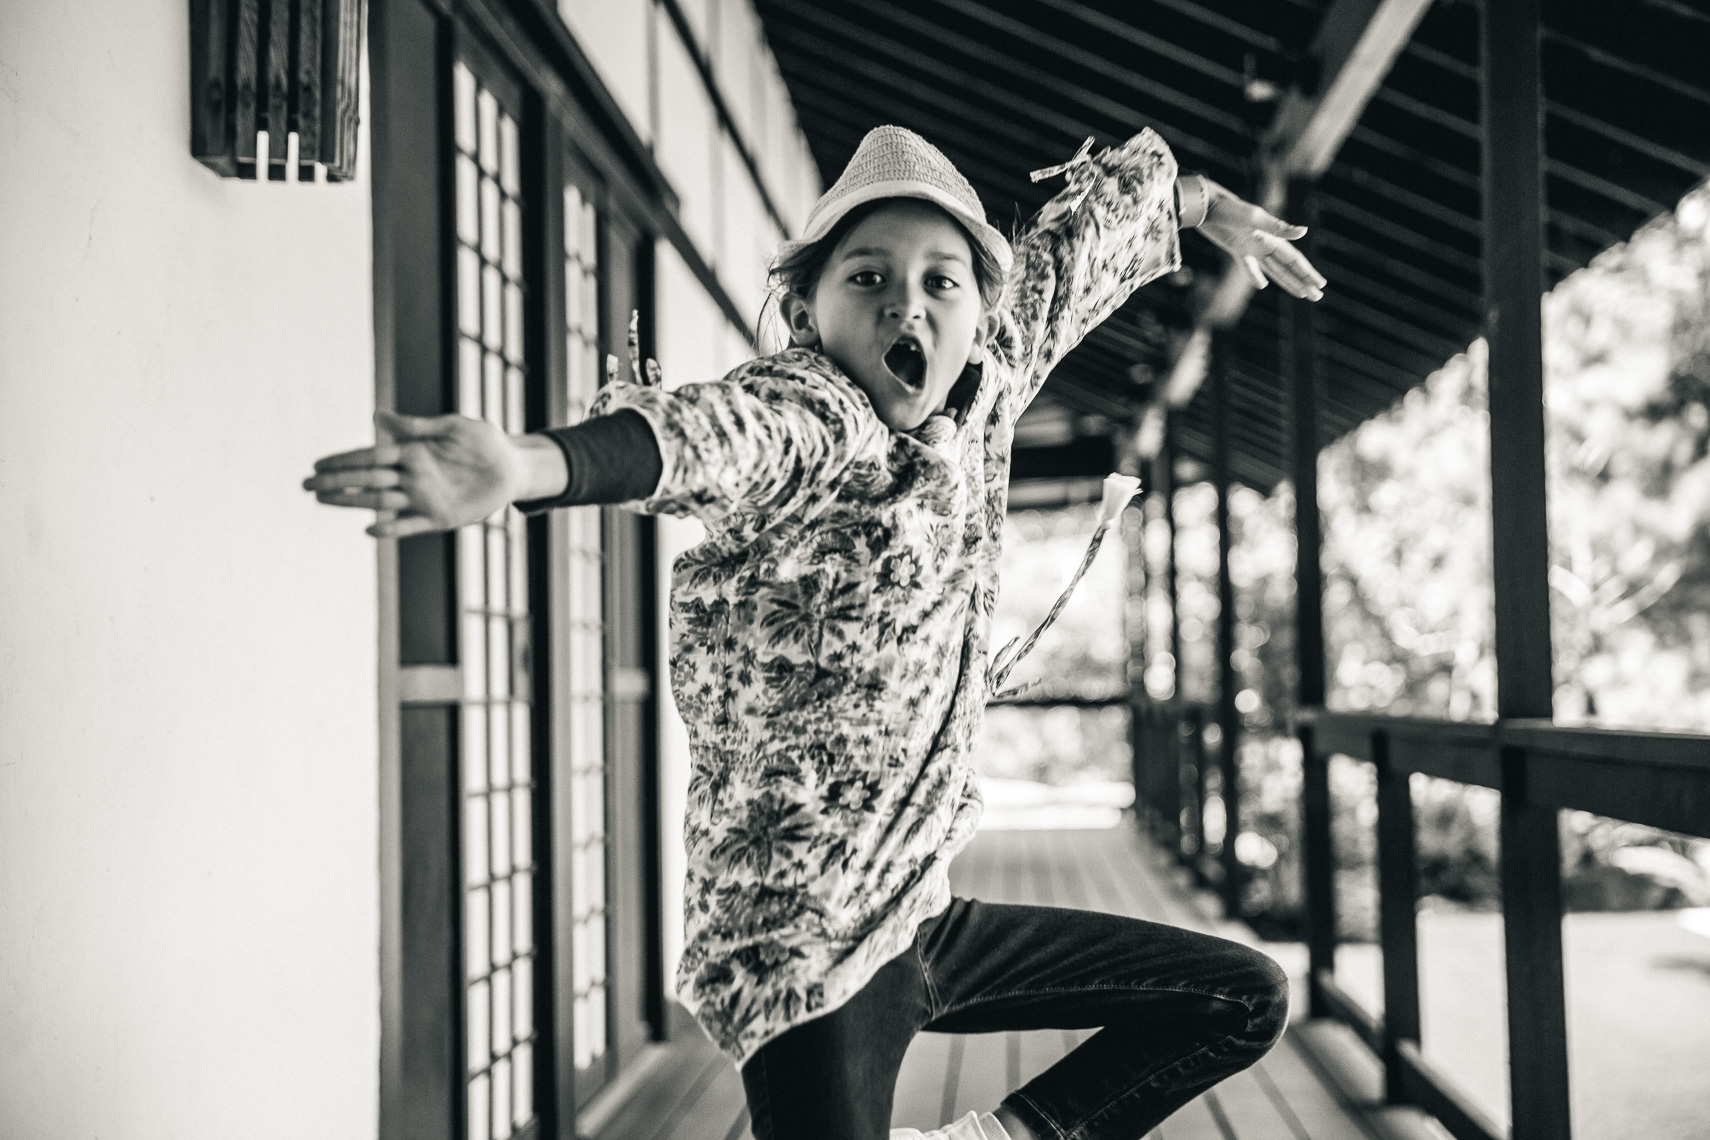 An energetic young kid jumping